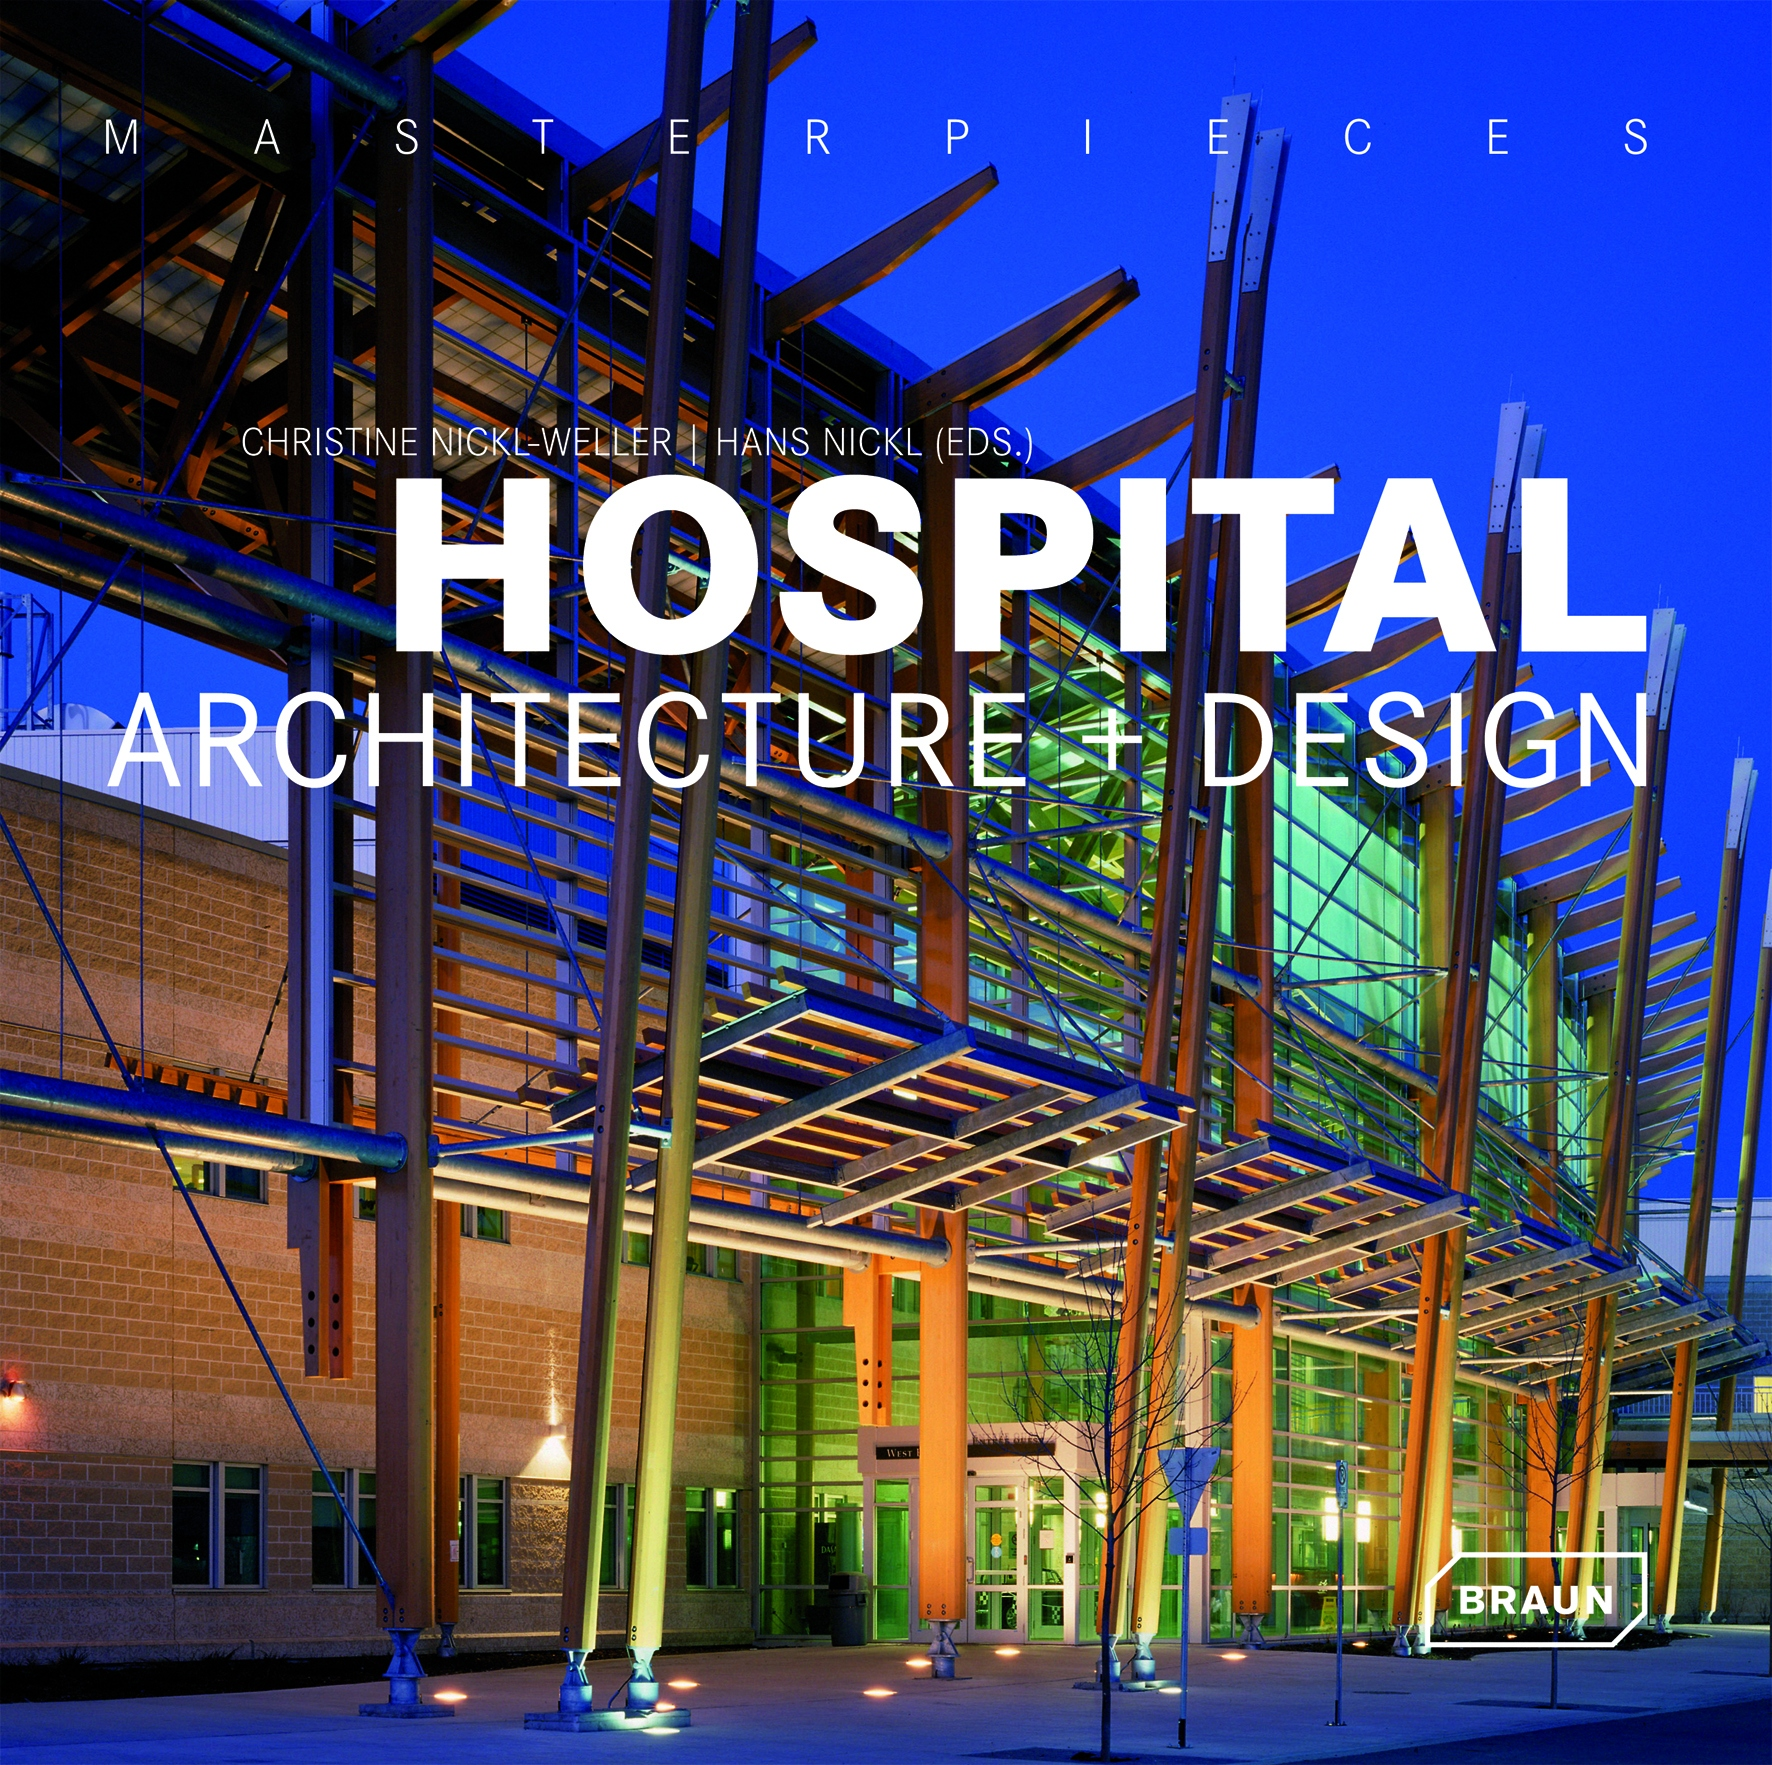 Masterpieces hospital architecture design architecture - Hospital planning and designing books pdf ...